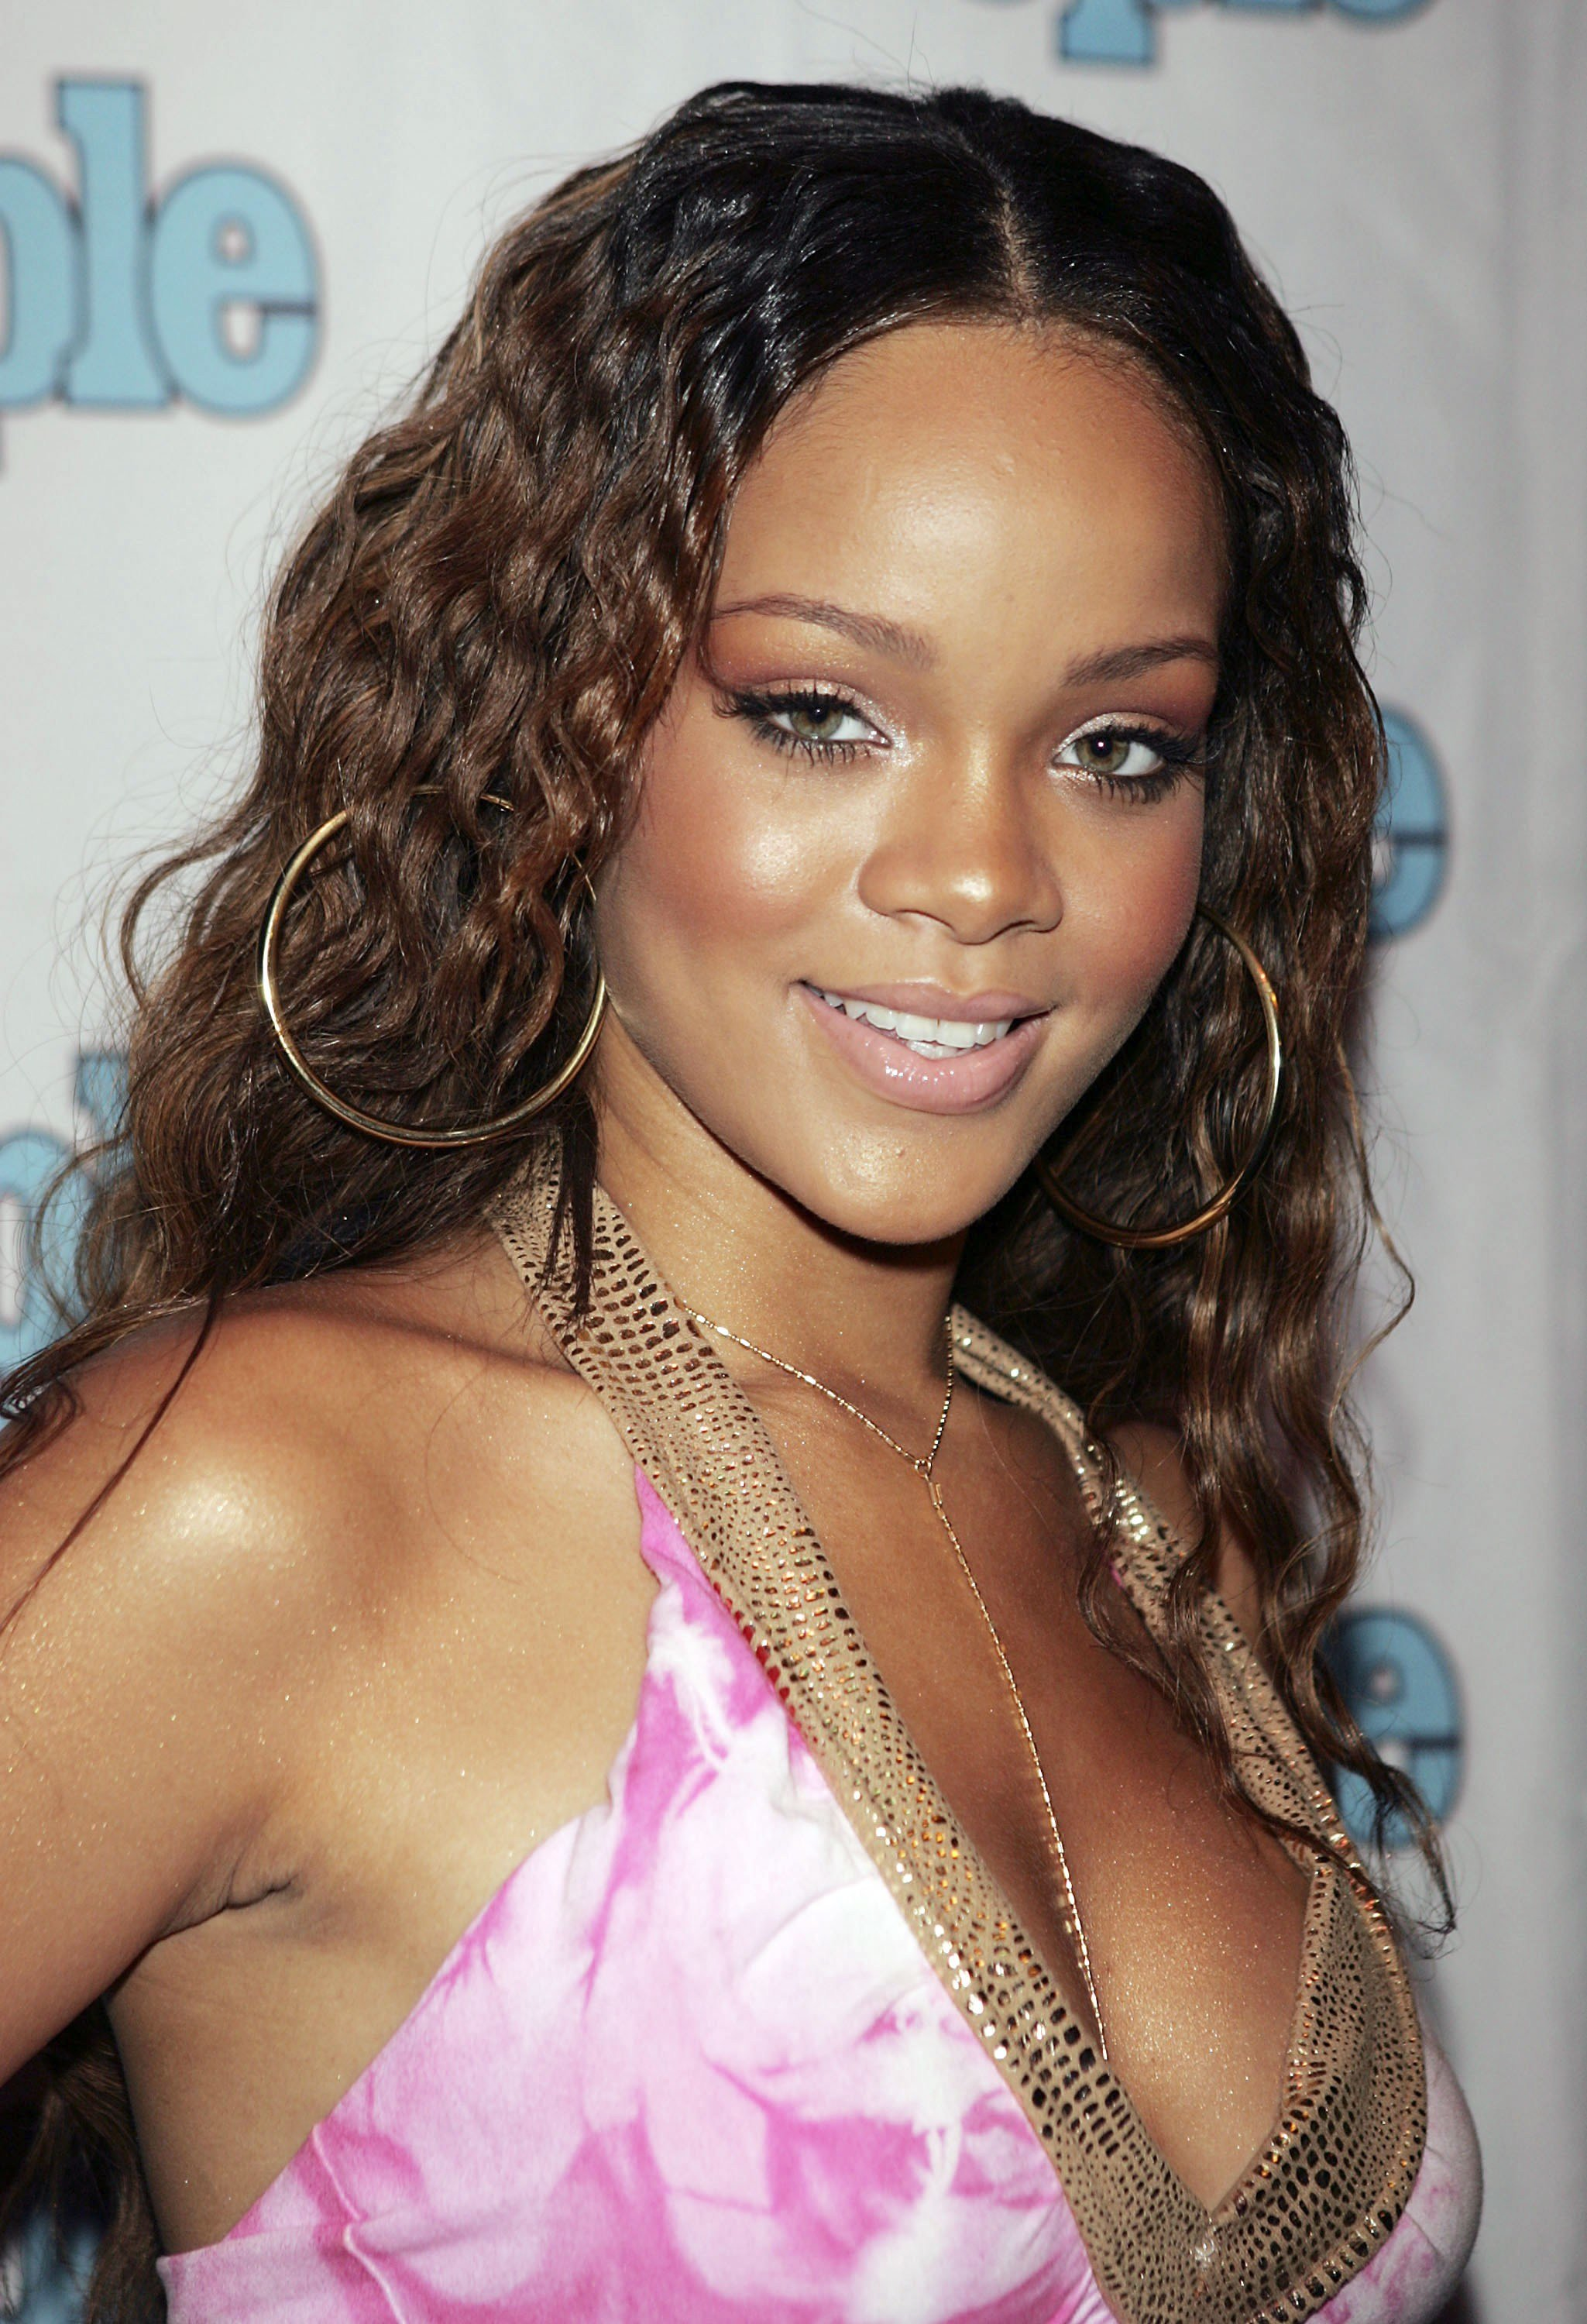 New 30 Pop Star Hairstyles That Defined The 2000S From Kelly Ideas With Pictures